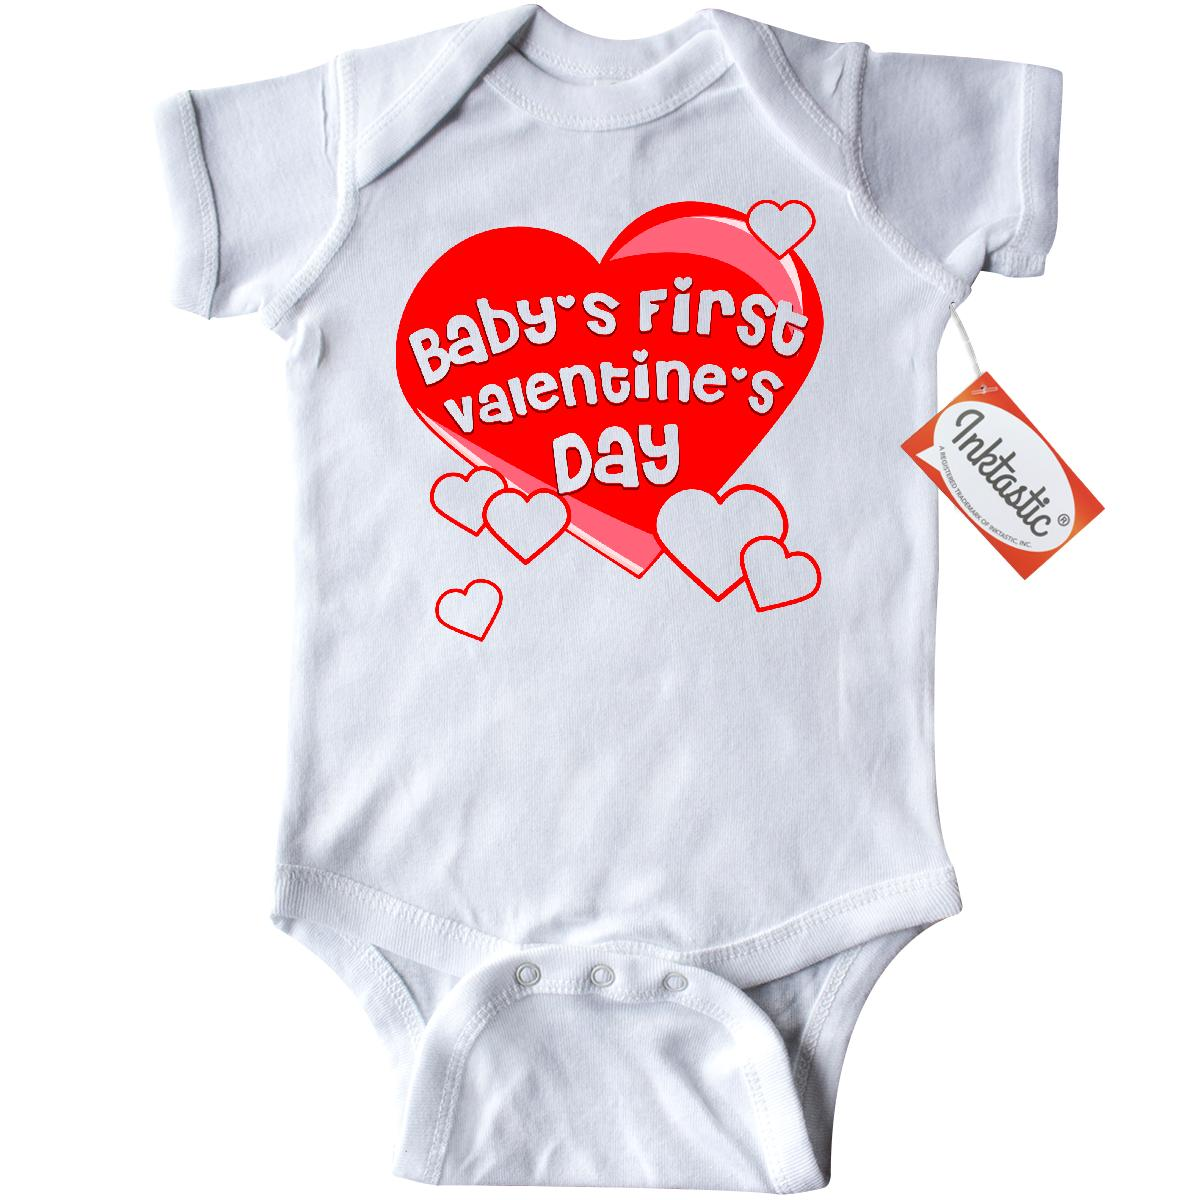 Inktastic Baby's First Valentine's Day Infant Creeper Baby Bodysuit hearts adorable 1st gift one-piece